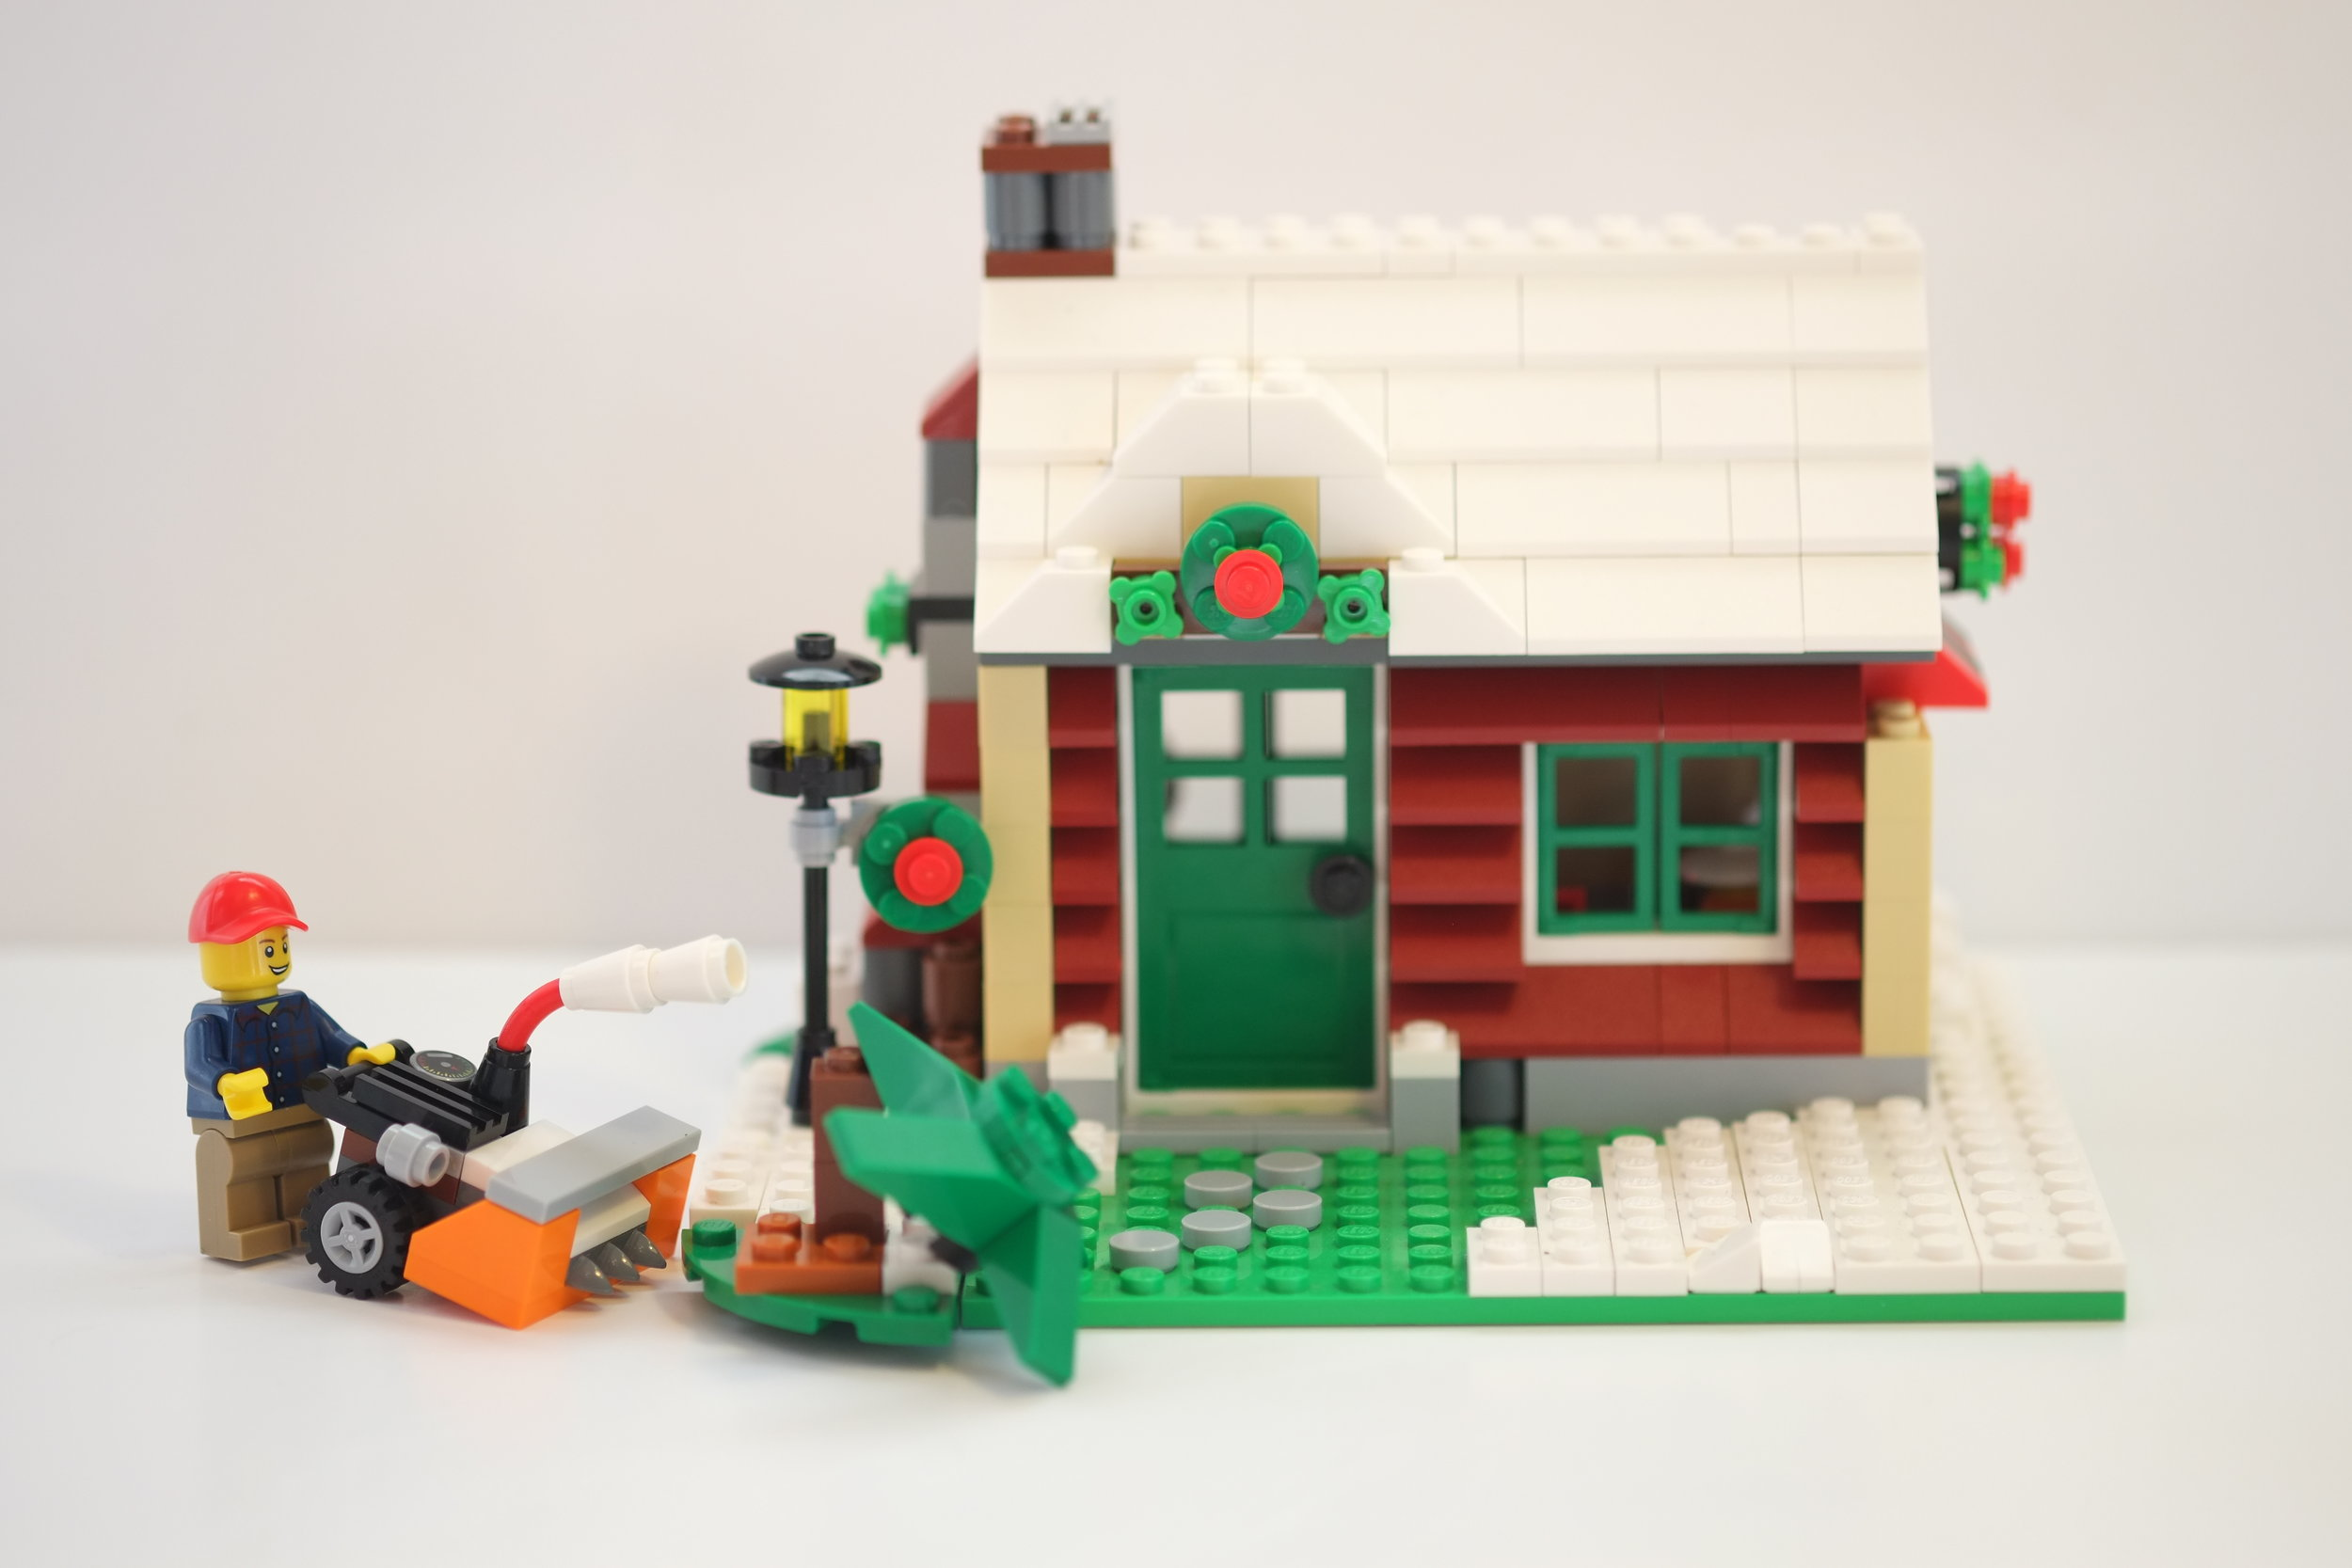 One of Heistheway's hundreds of photos for the stop-motion LEGO contest